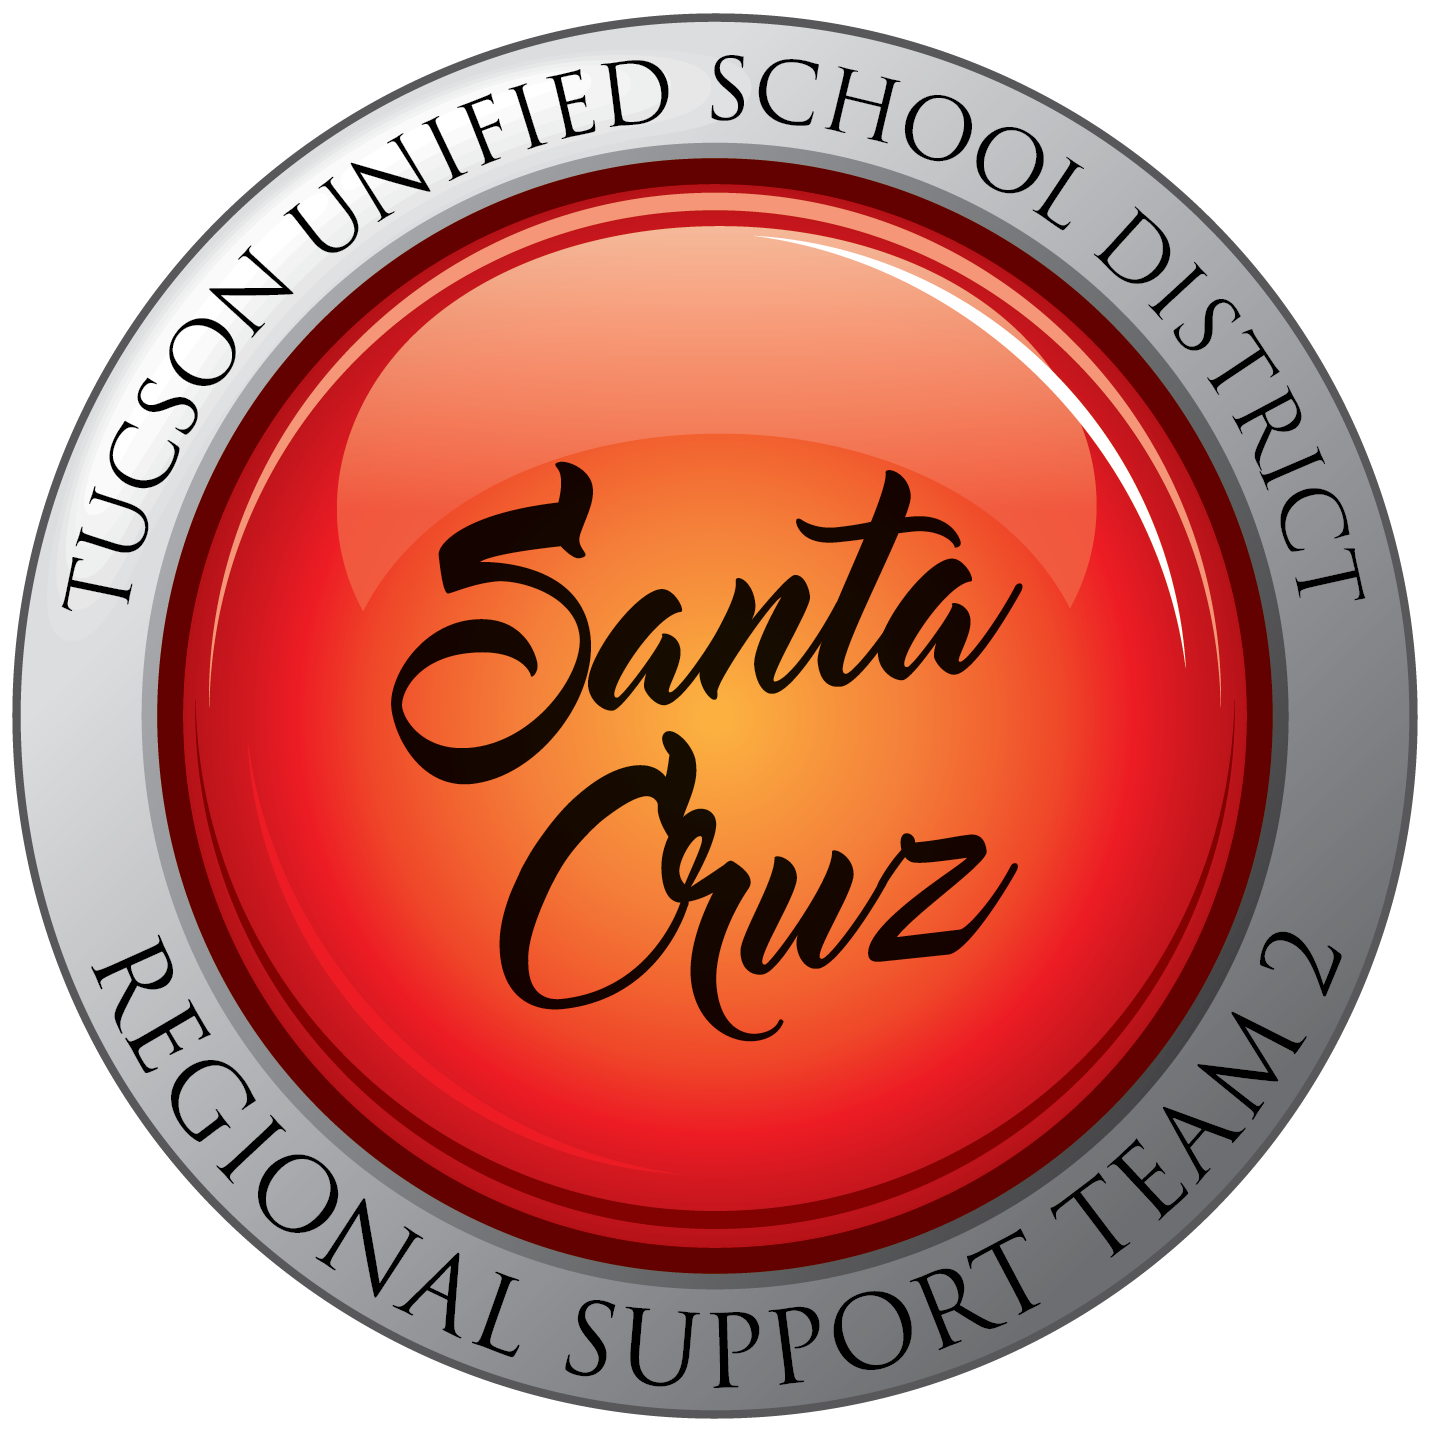 Santa Cruz Region Logo